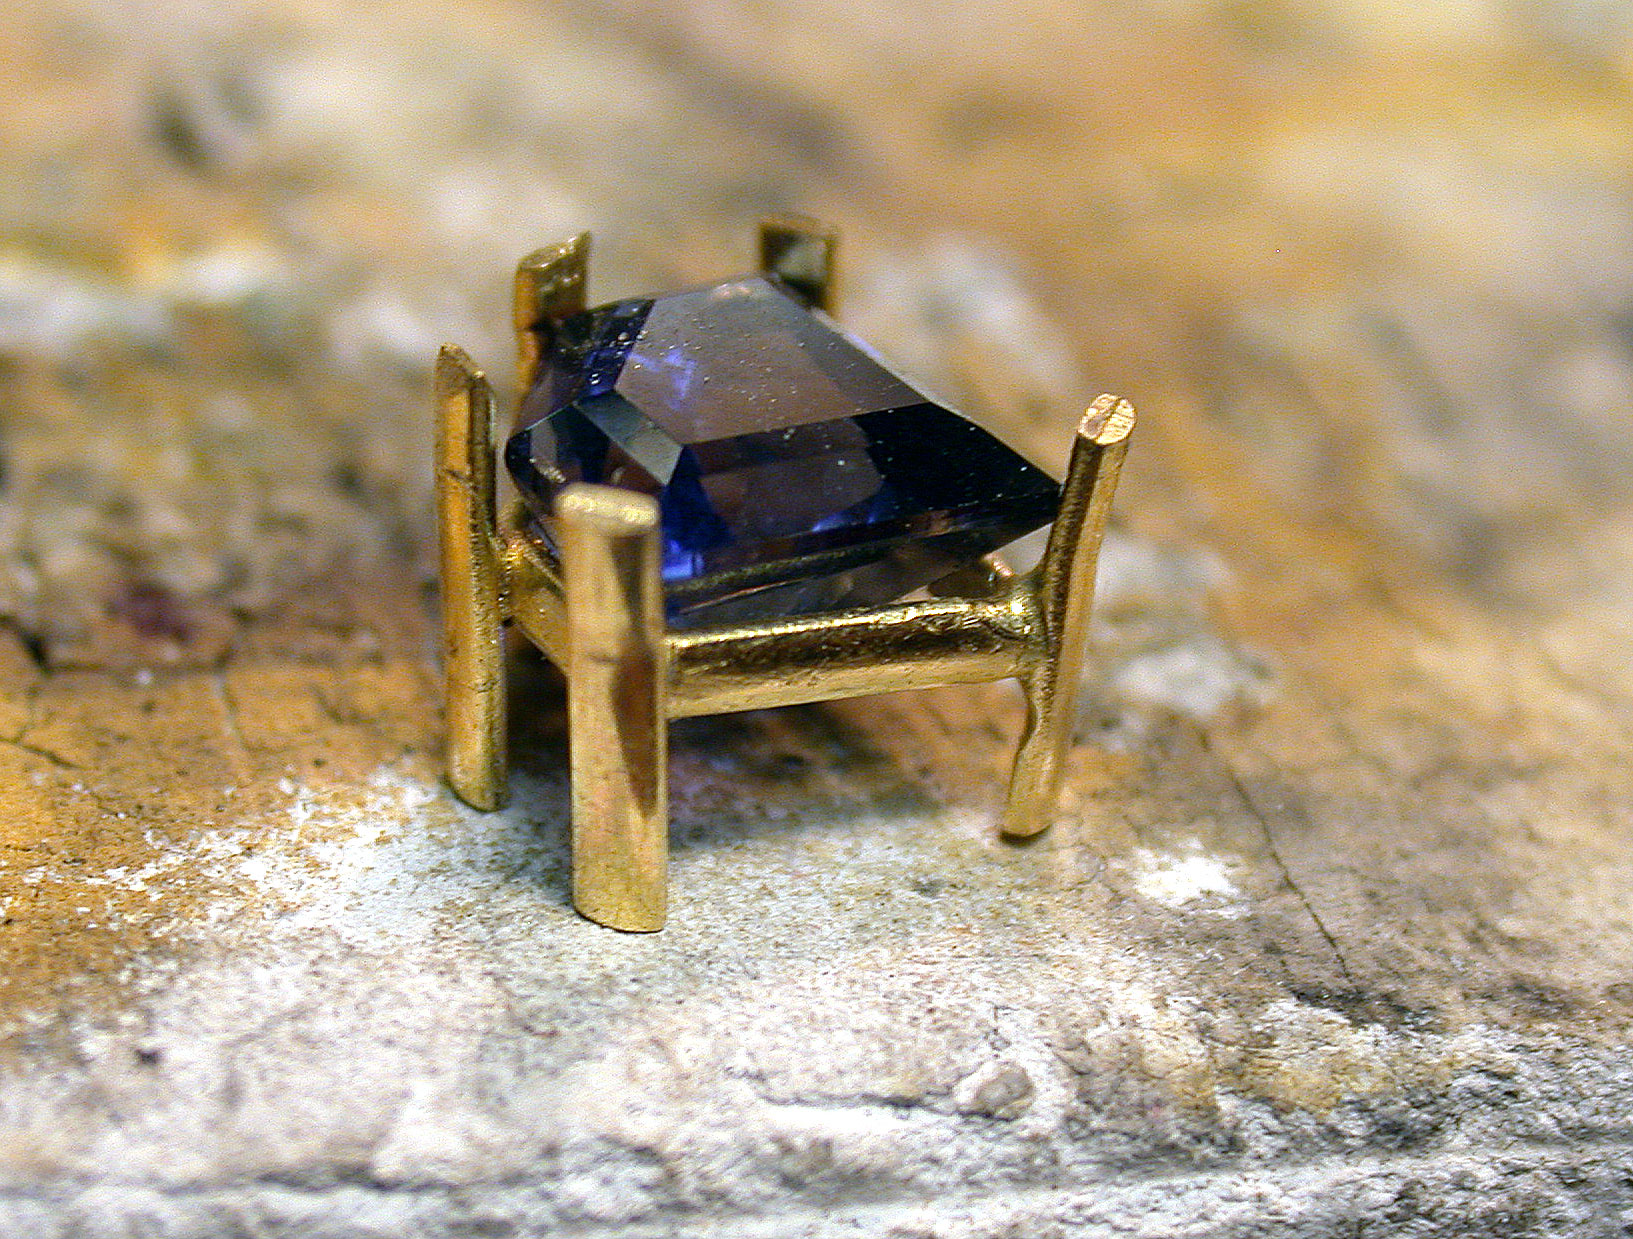 If you measure carefully enough, your stone should fit nicely on this setting once you bend the prongs out slightly, with the prongs lining up with the points of the stone. Photo: Noël Yovovich.